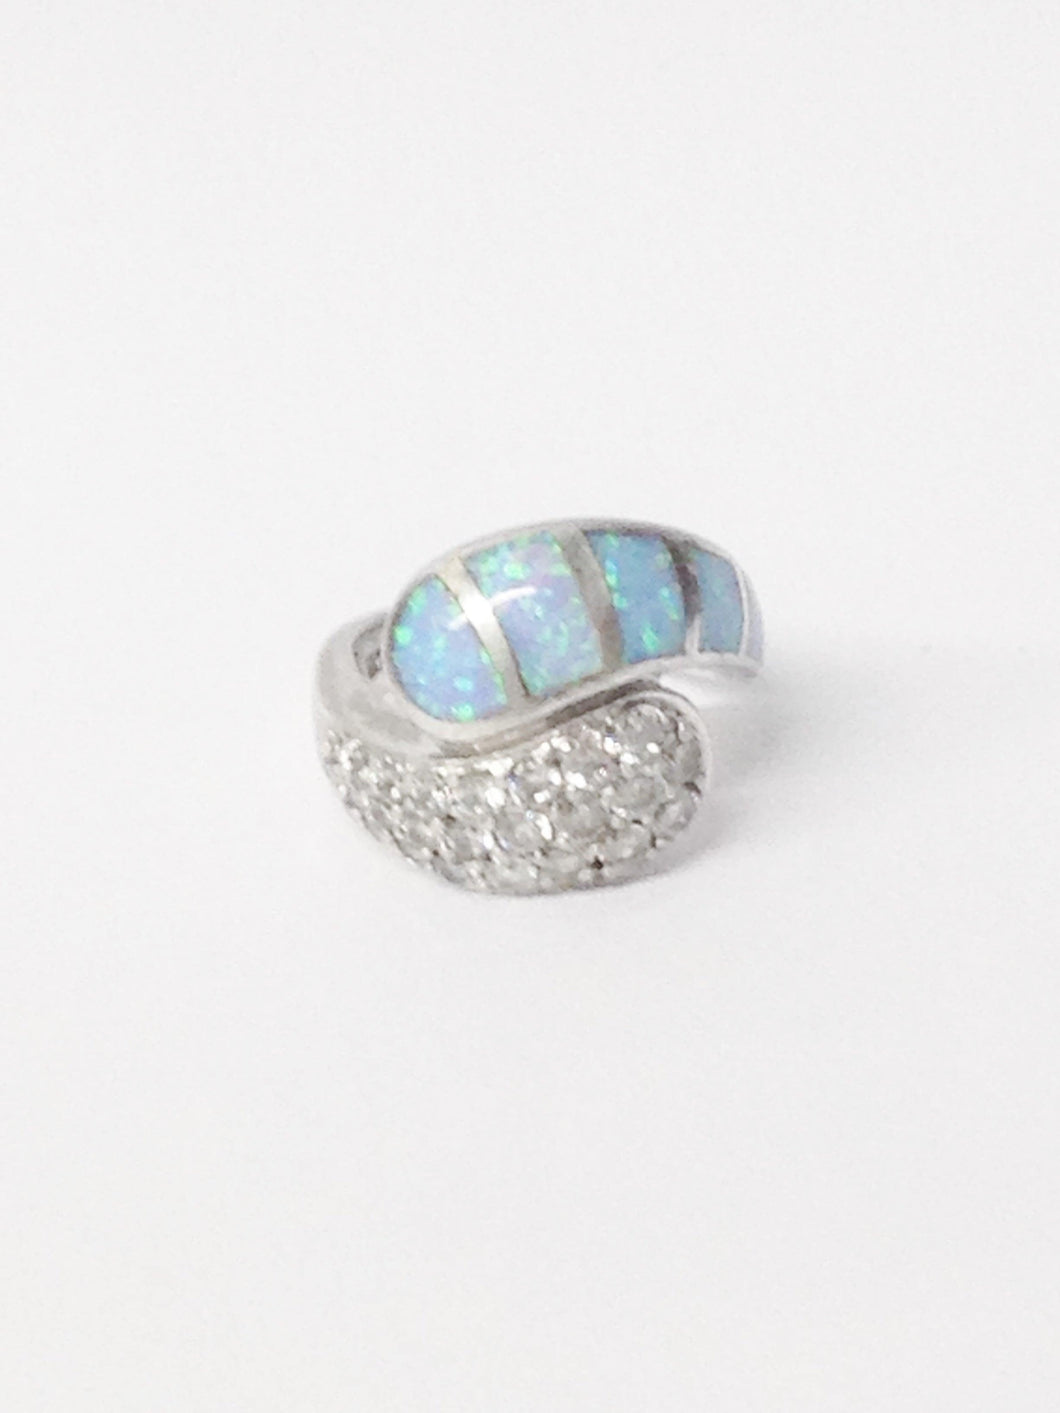 Opal Inlay And CZ .925 Sterling Silver Ring www.hersandhistreasures.com/collections/sterling-silver-jewelry